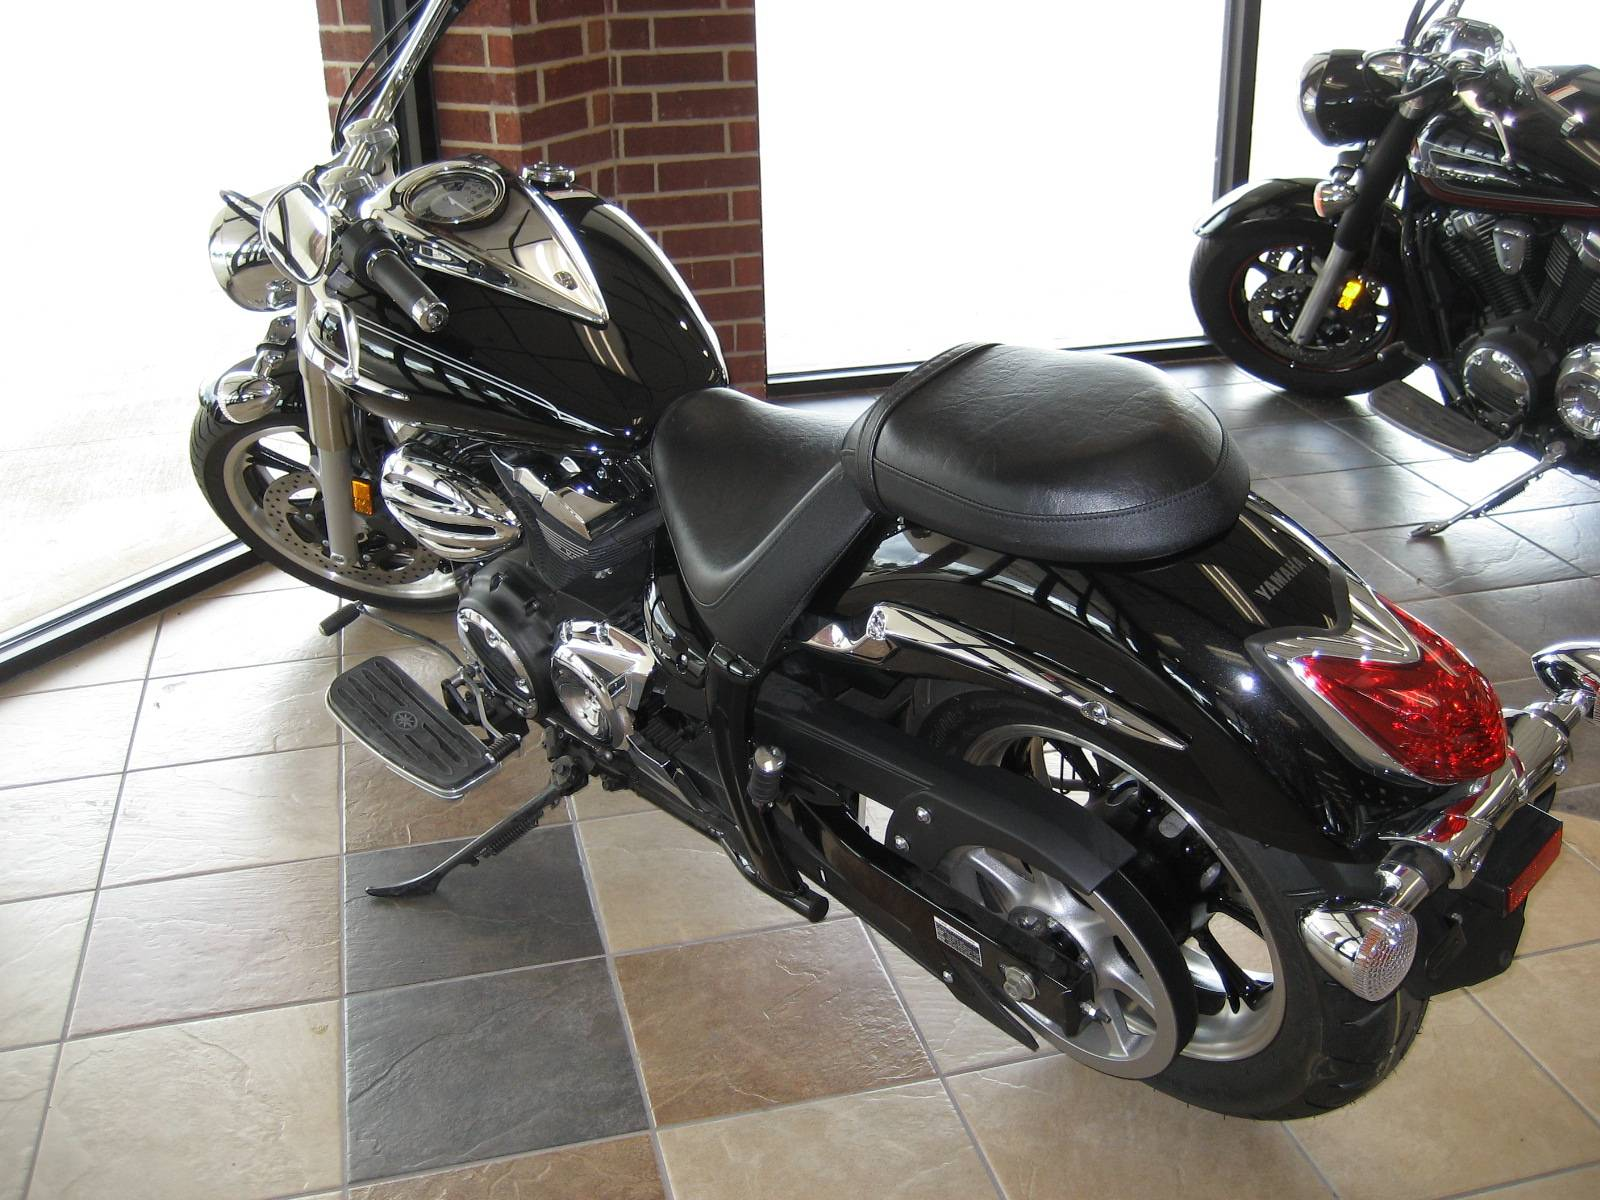 2012 Yamaha 950 Vstar in Shawnee, Oklahoma - Photo 1